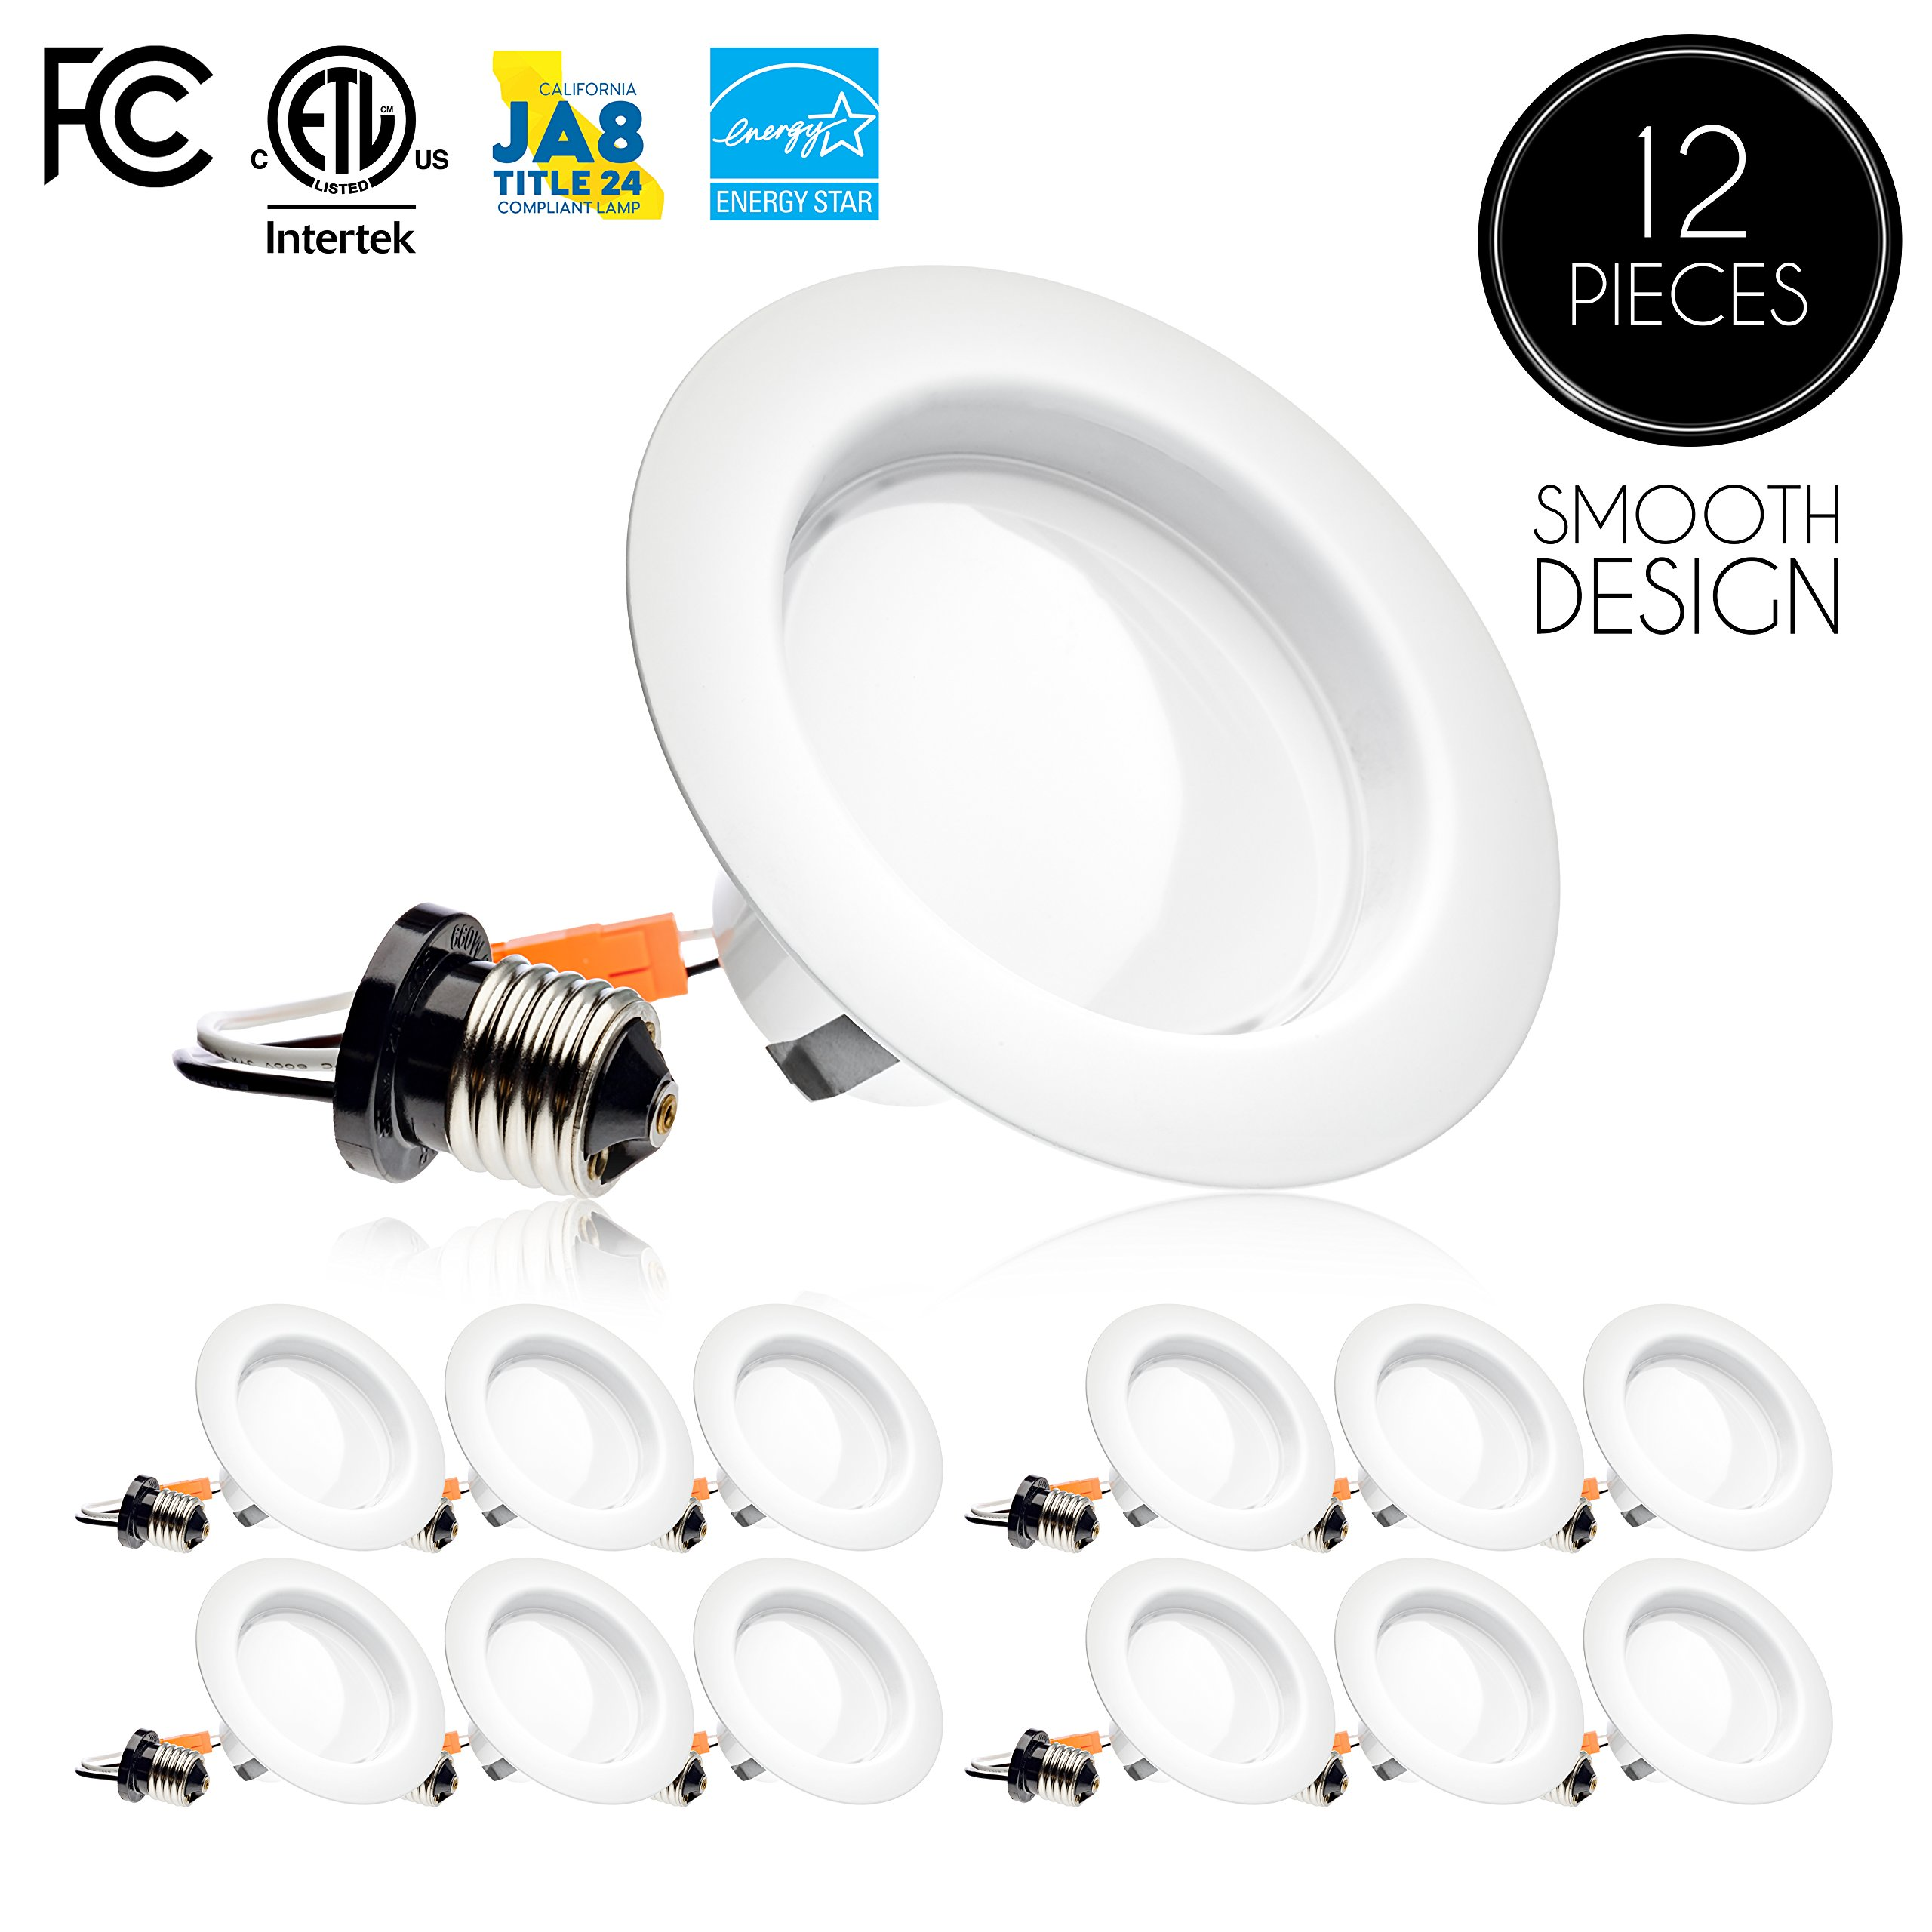 Parmida (12 Pack) 4 inch LED Downlight Trim, Dimmable, 10.5W (75W Replacement), 700 Lm, EASY INSTALLATION, 3000K (Soft White), Retrofit LED Recessed Lighting Fixture, ENERGY STAR & ETL-Listed